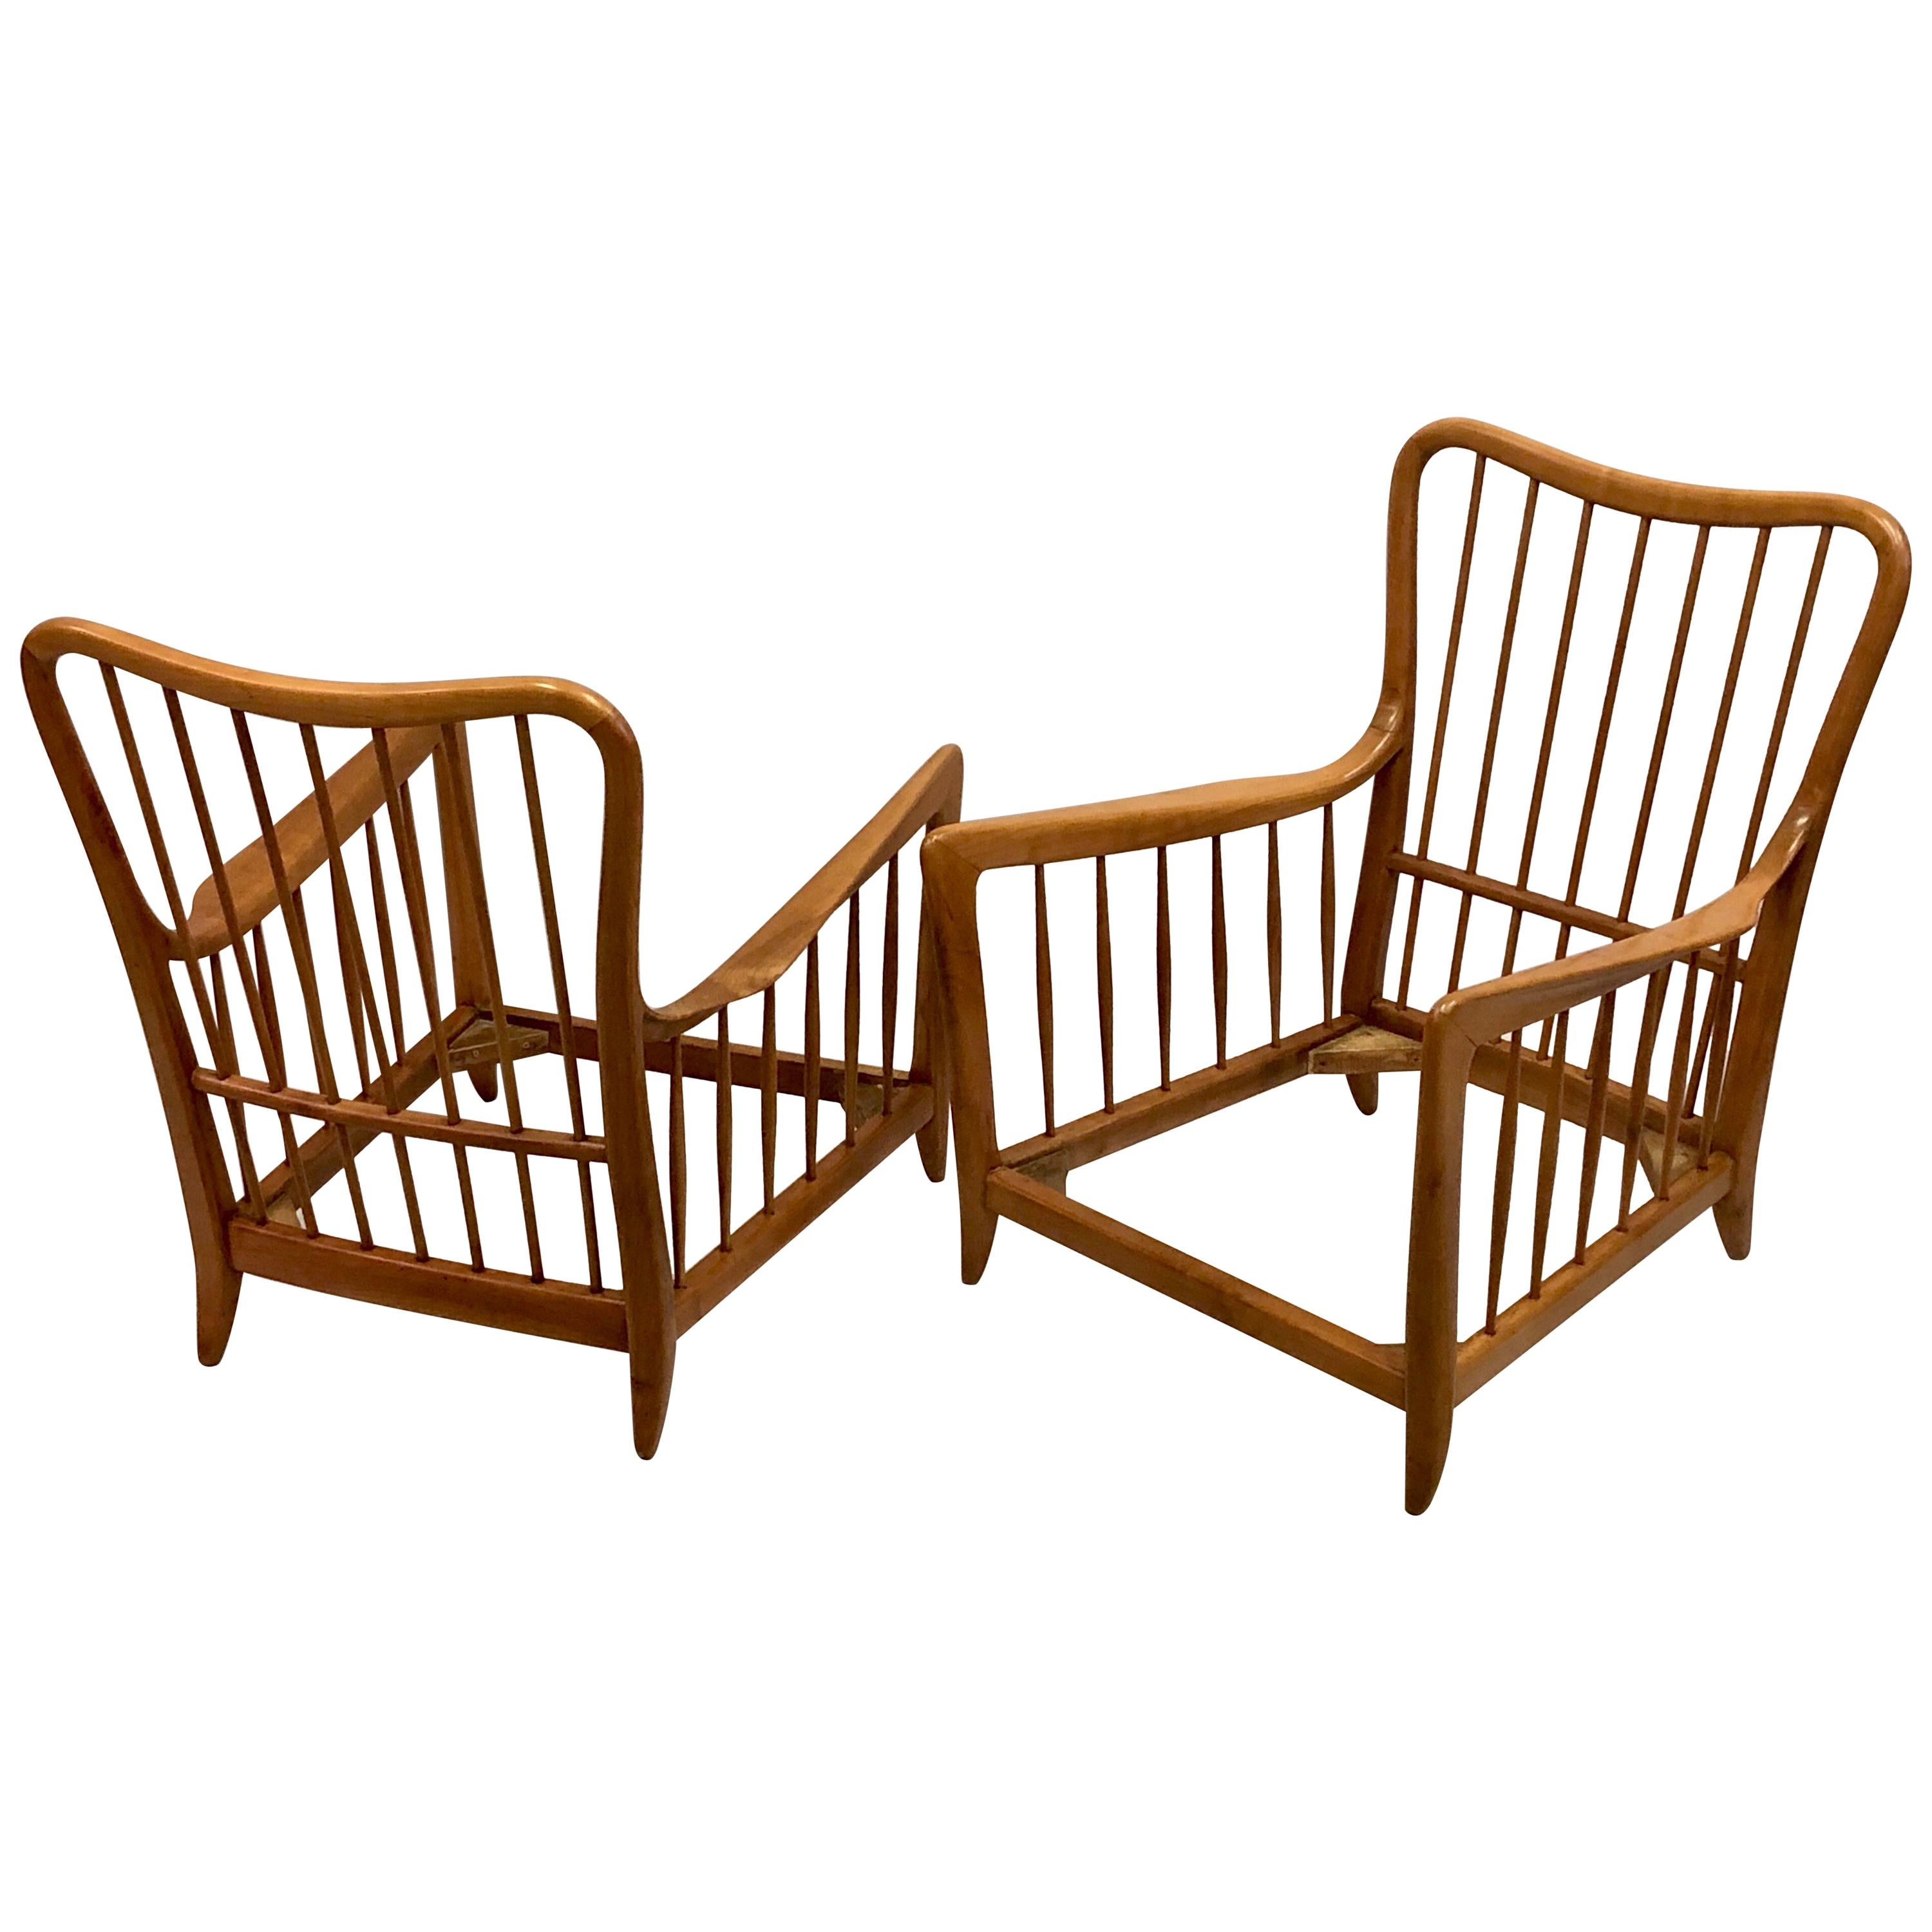 Pair of Italian Modern Neoclassical Cherrywood Armchairs by Paolo Buffa